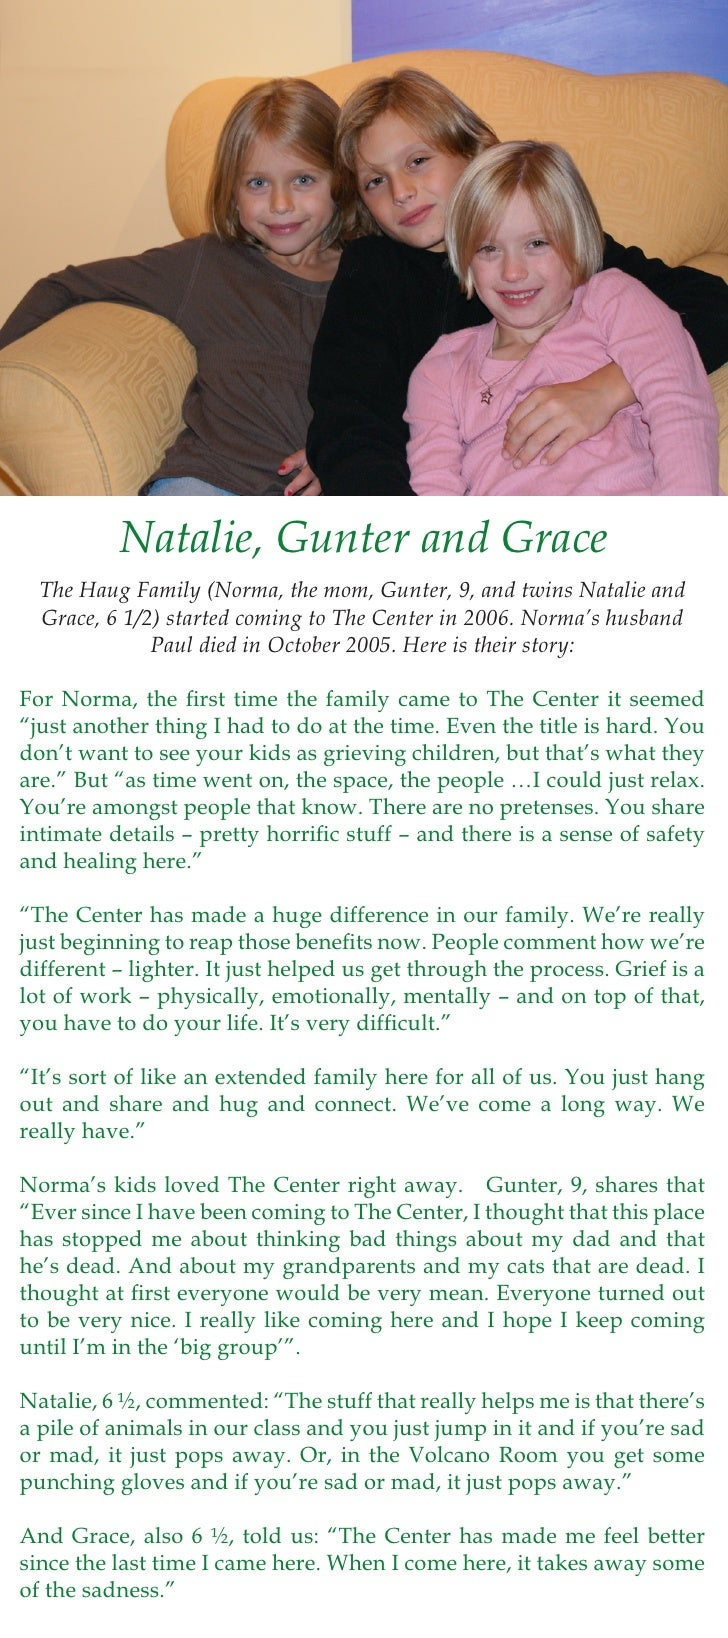 Natalie, Gunter and Grace   The Haug Family (Norma, the mom, Gunter, 9, and twins Natalie and   Grace, 6 1/2) started comi...